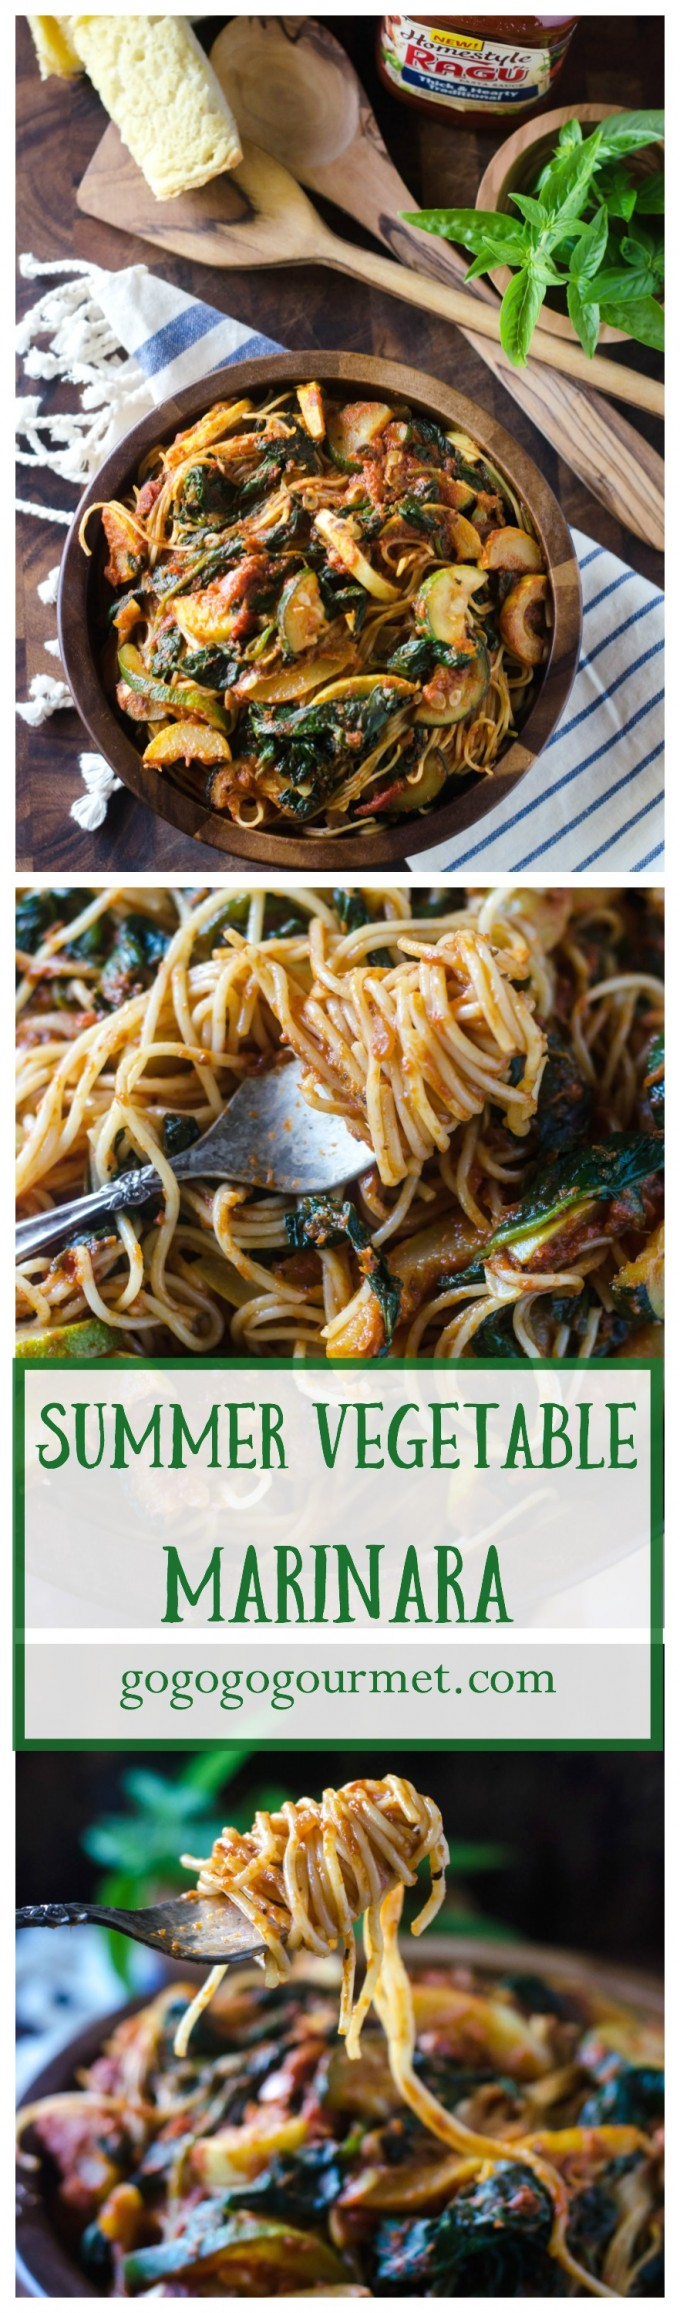 This quick weeknight pasta dish is packed with summer's bounty, and so hearty that you'd never guess it was vegetarian! | Summer Vegetable Marinara | Go Go Go Gourmet @Go Go Go Gourmet via @gogogogourmet